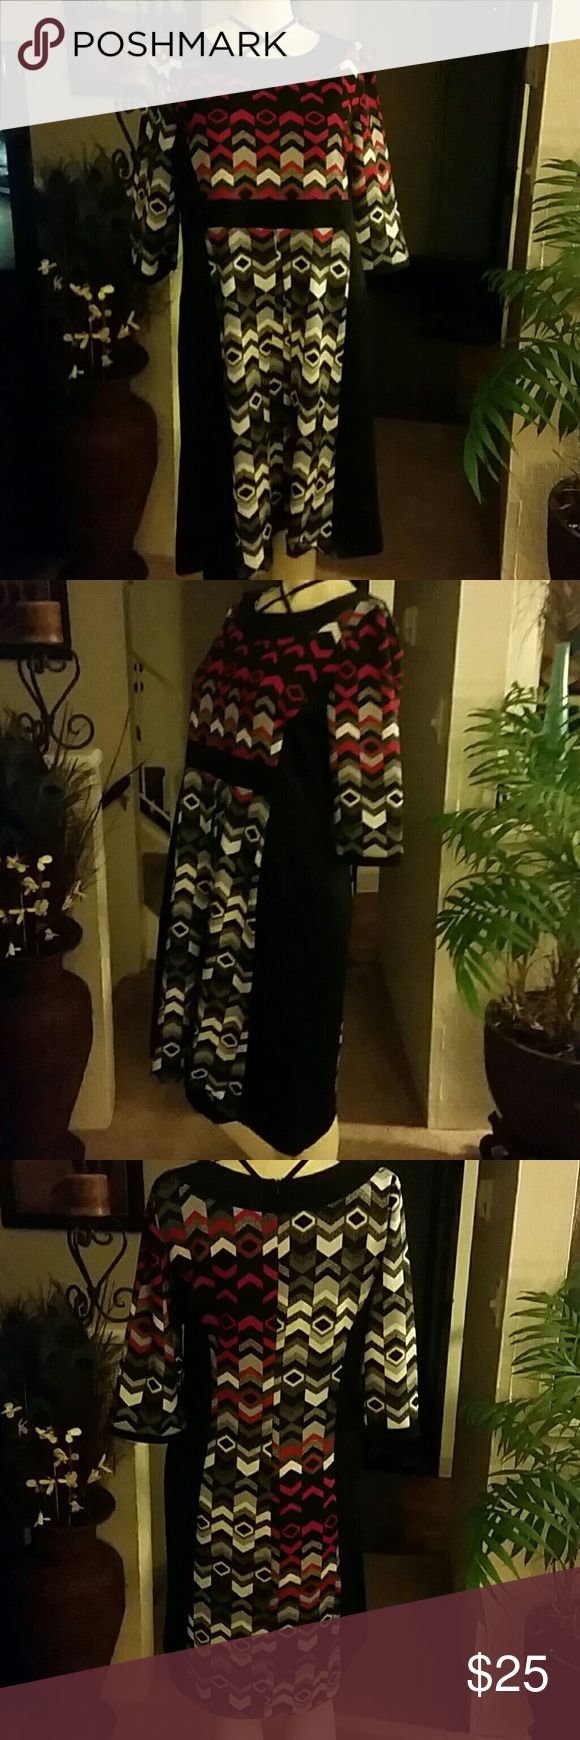 Beautiful Dress. Retro design dress colorful. 95% Polyester and 5 Spandex. In excellent condition. Dress size is 52. Dress was made in Greece. La Qualite Dresses